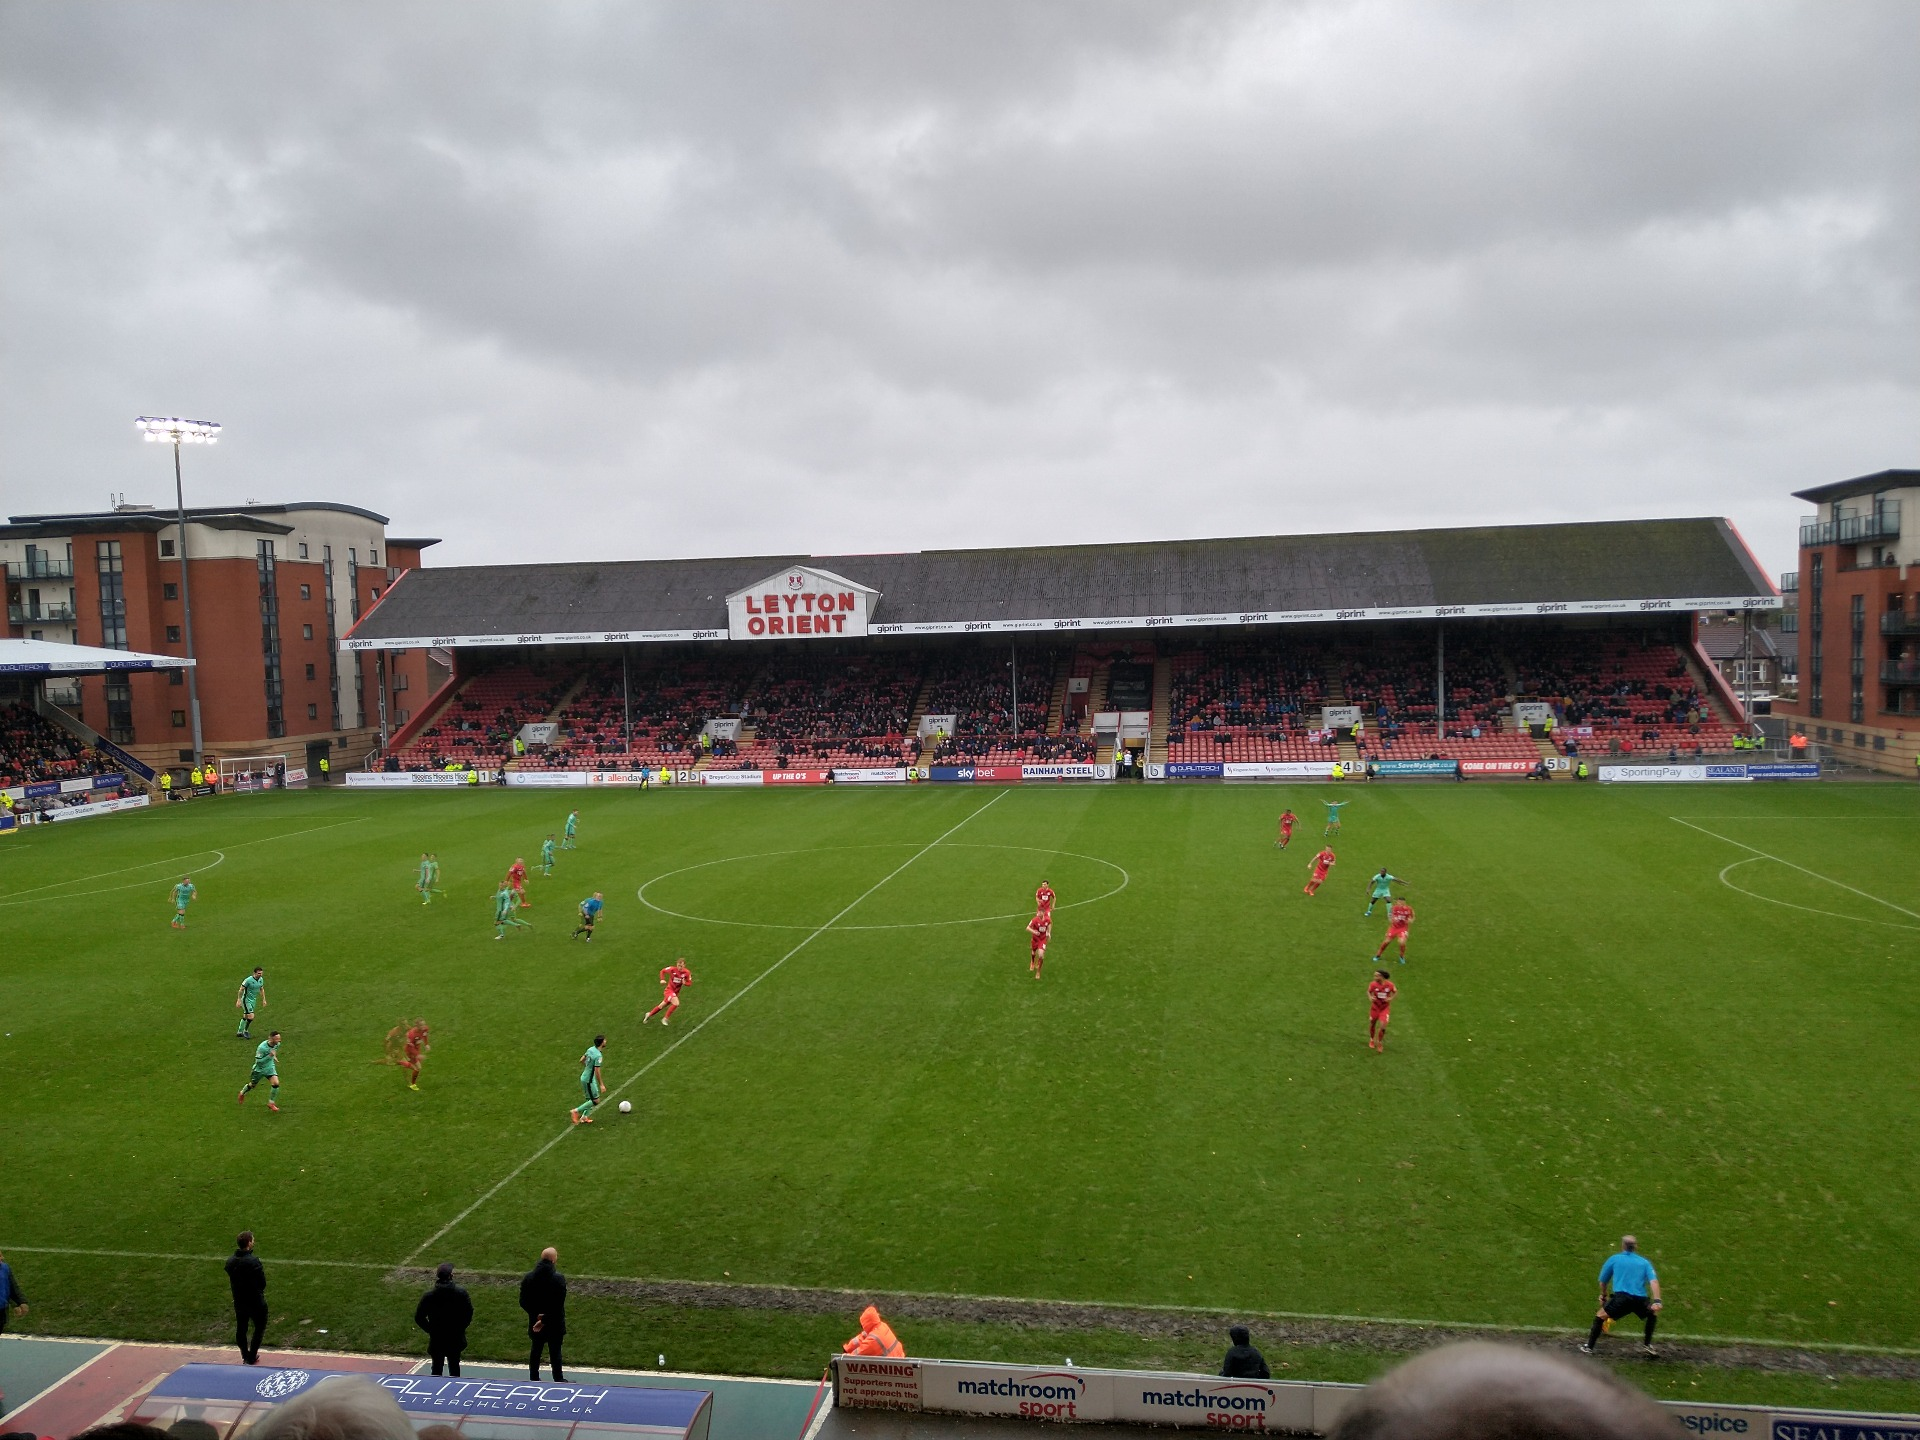 Brisbane Road Section West Row R Seat 69